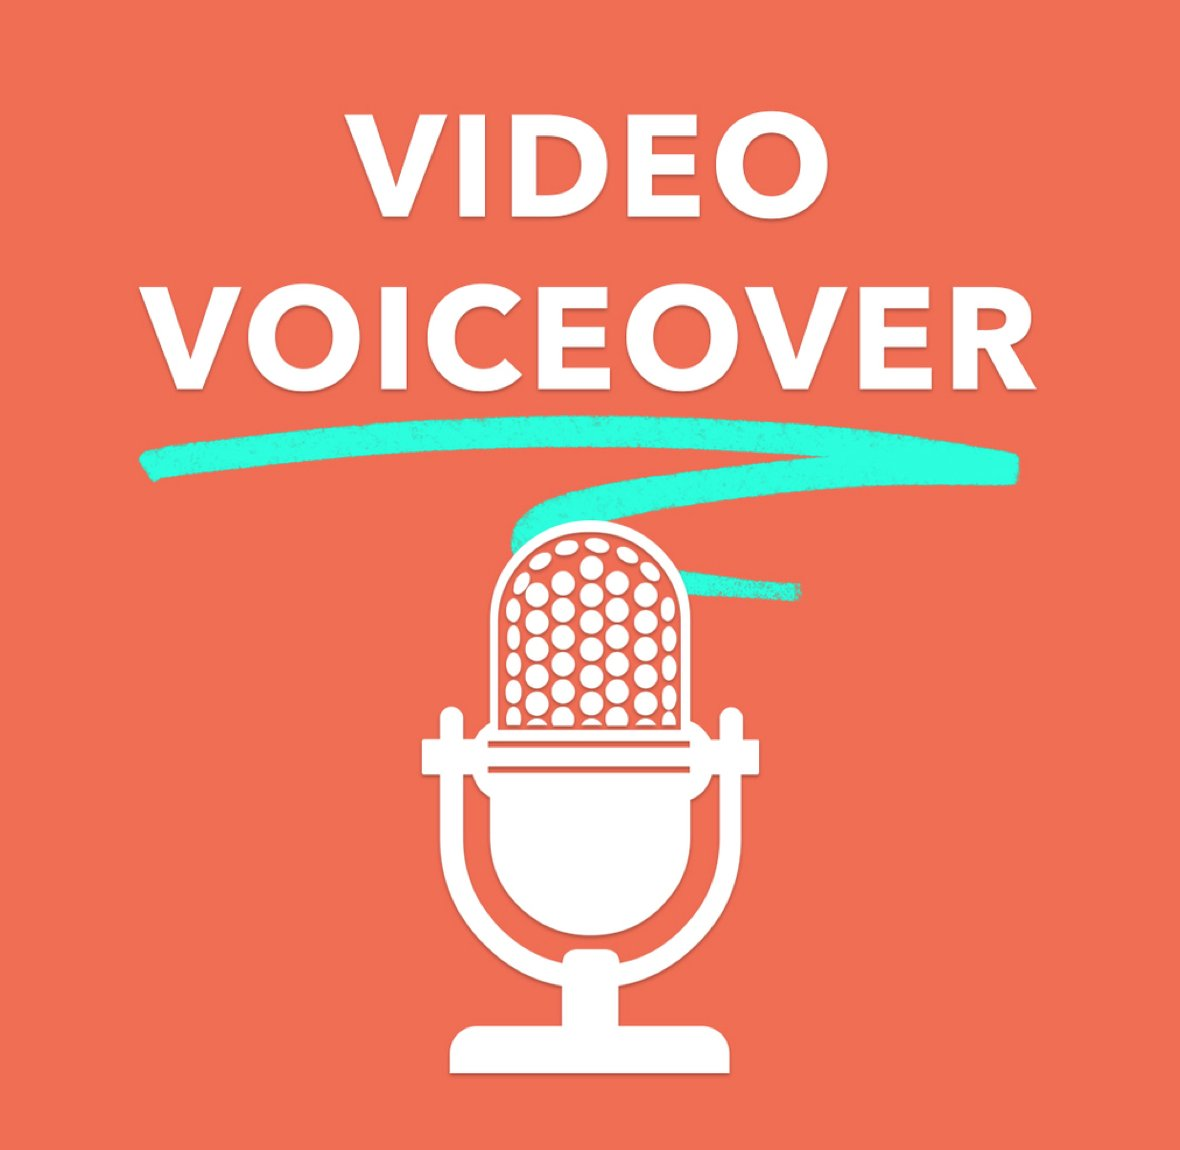 You can find a video on the site, record a new voiceover for it & contribute that here — https://t.co/Ml5Qyix7mL https://t.co/7yPlIra1jH